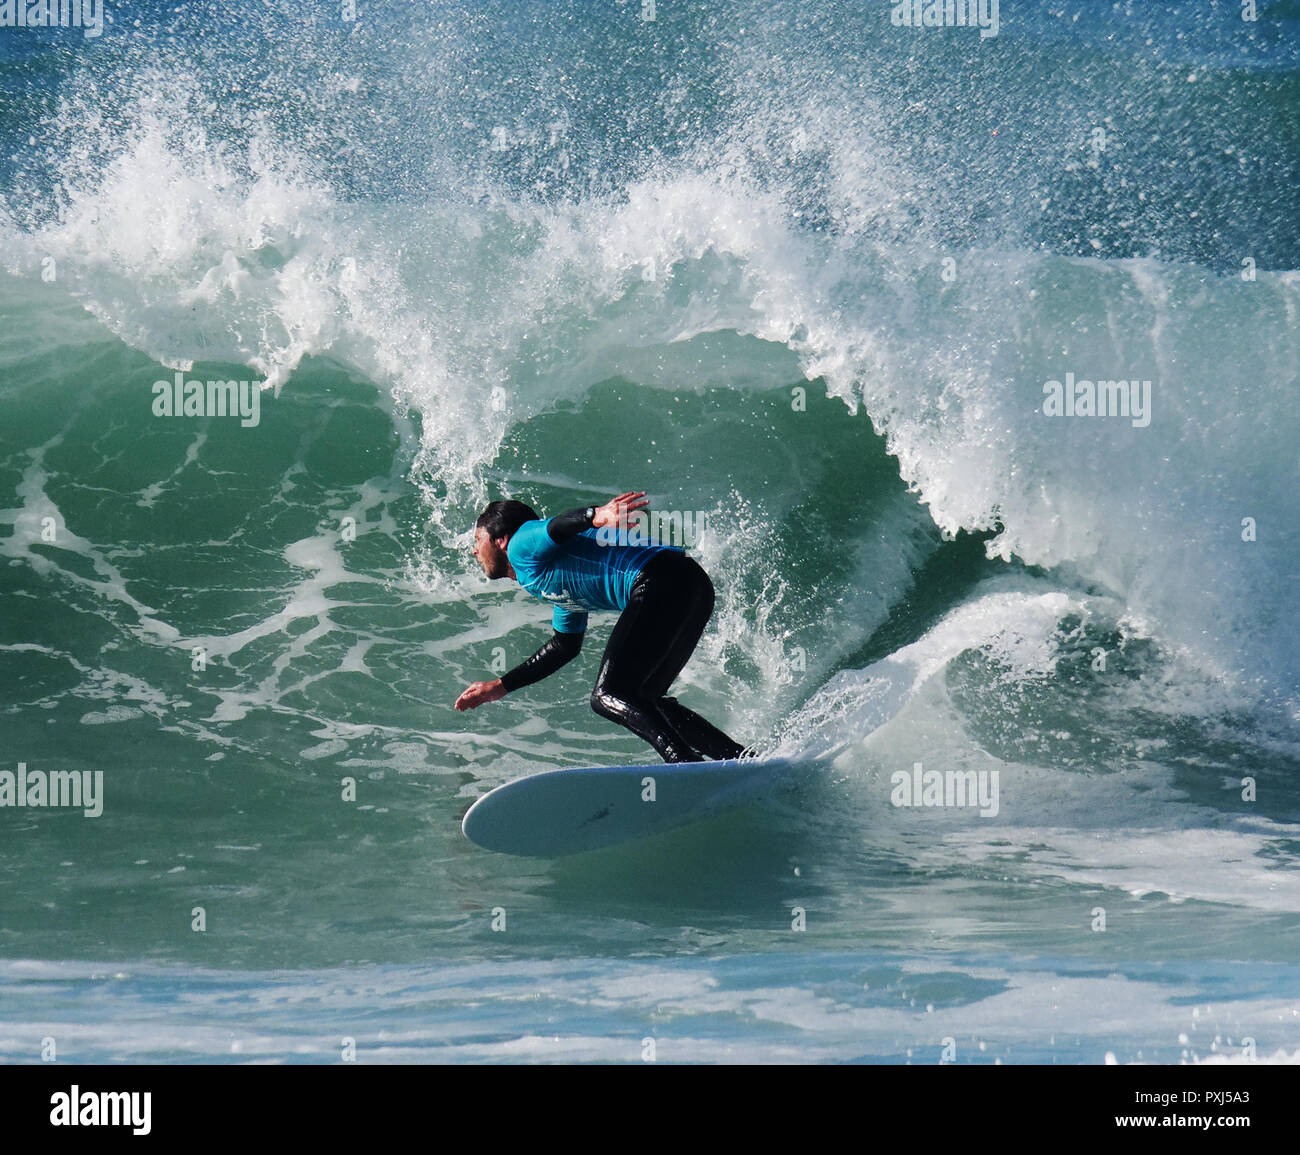 Beach individuals enjoy October sunshine at Fistral Beach cornwall UK during a surf contest 2018. - Stock Image